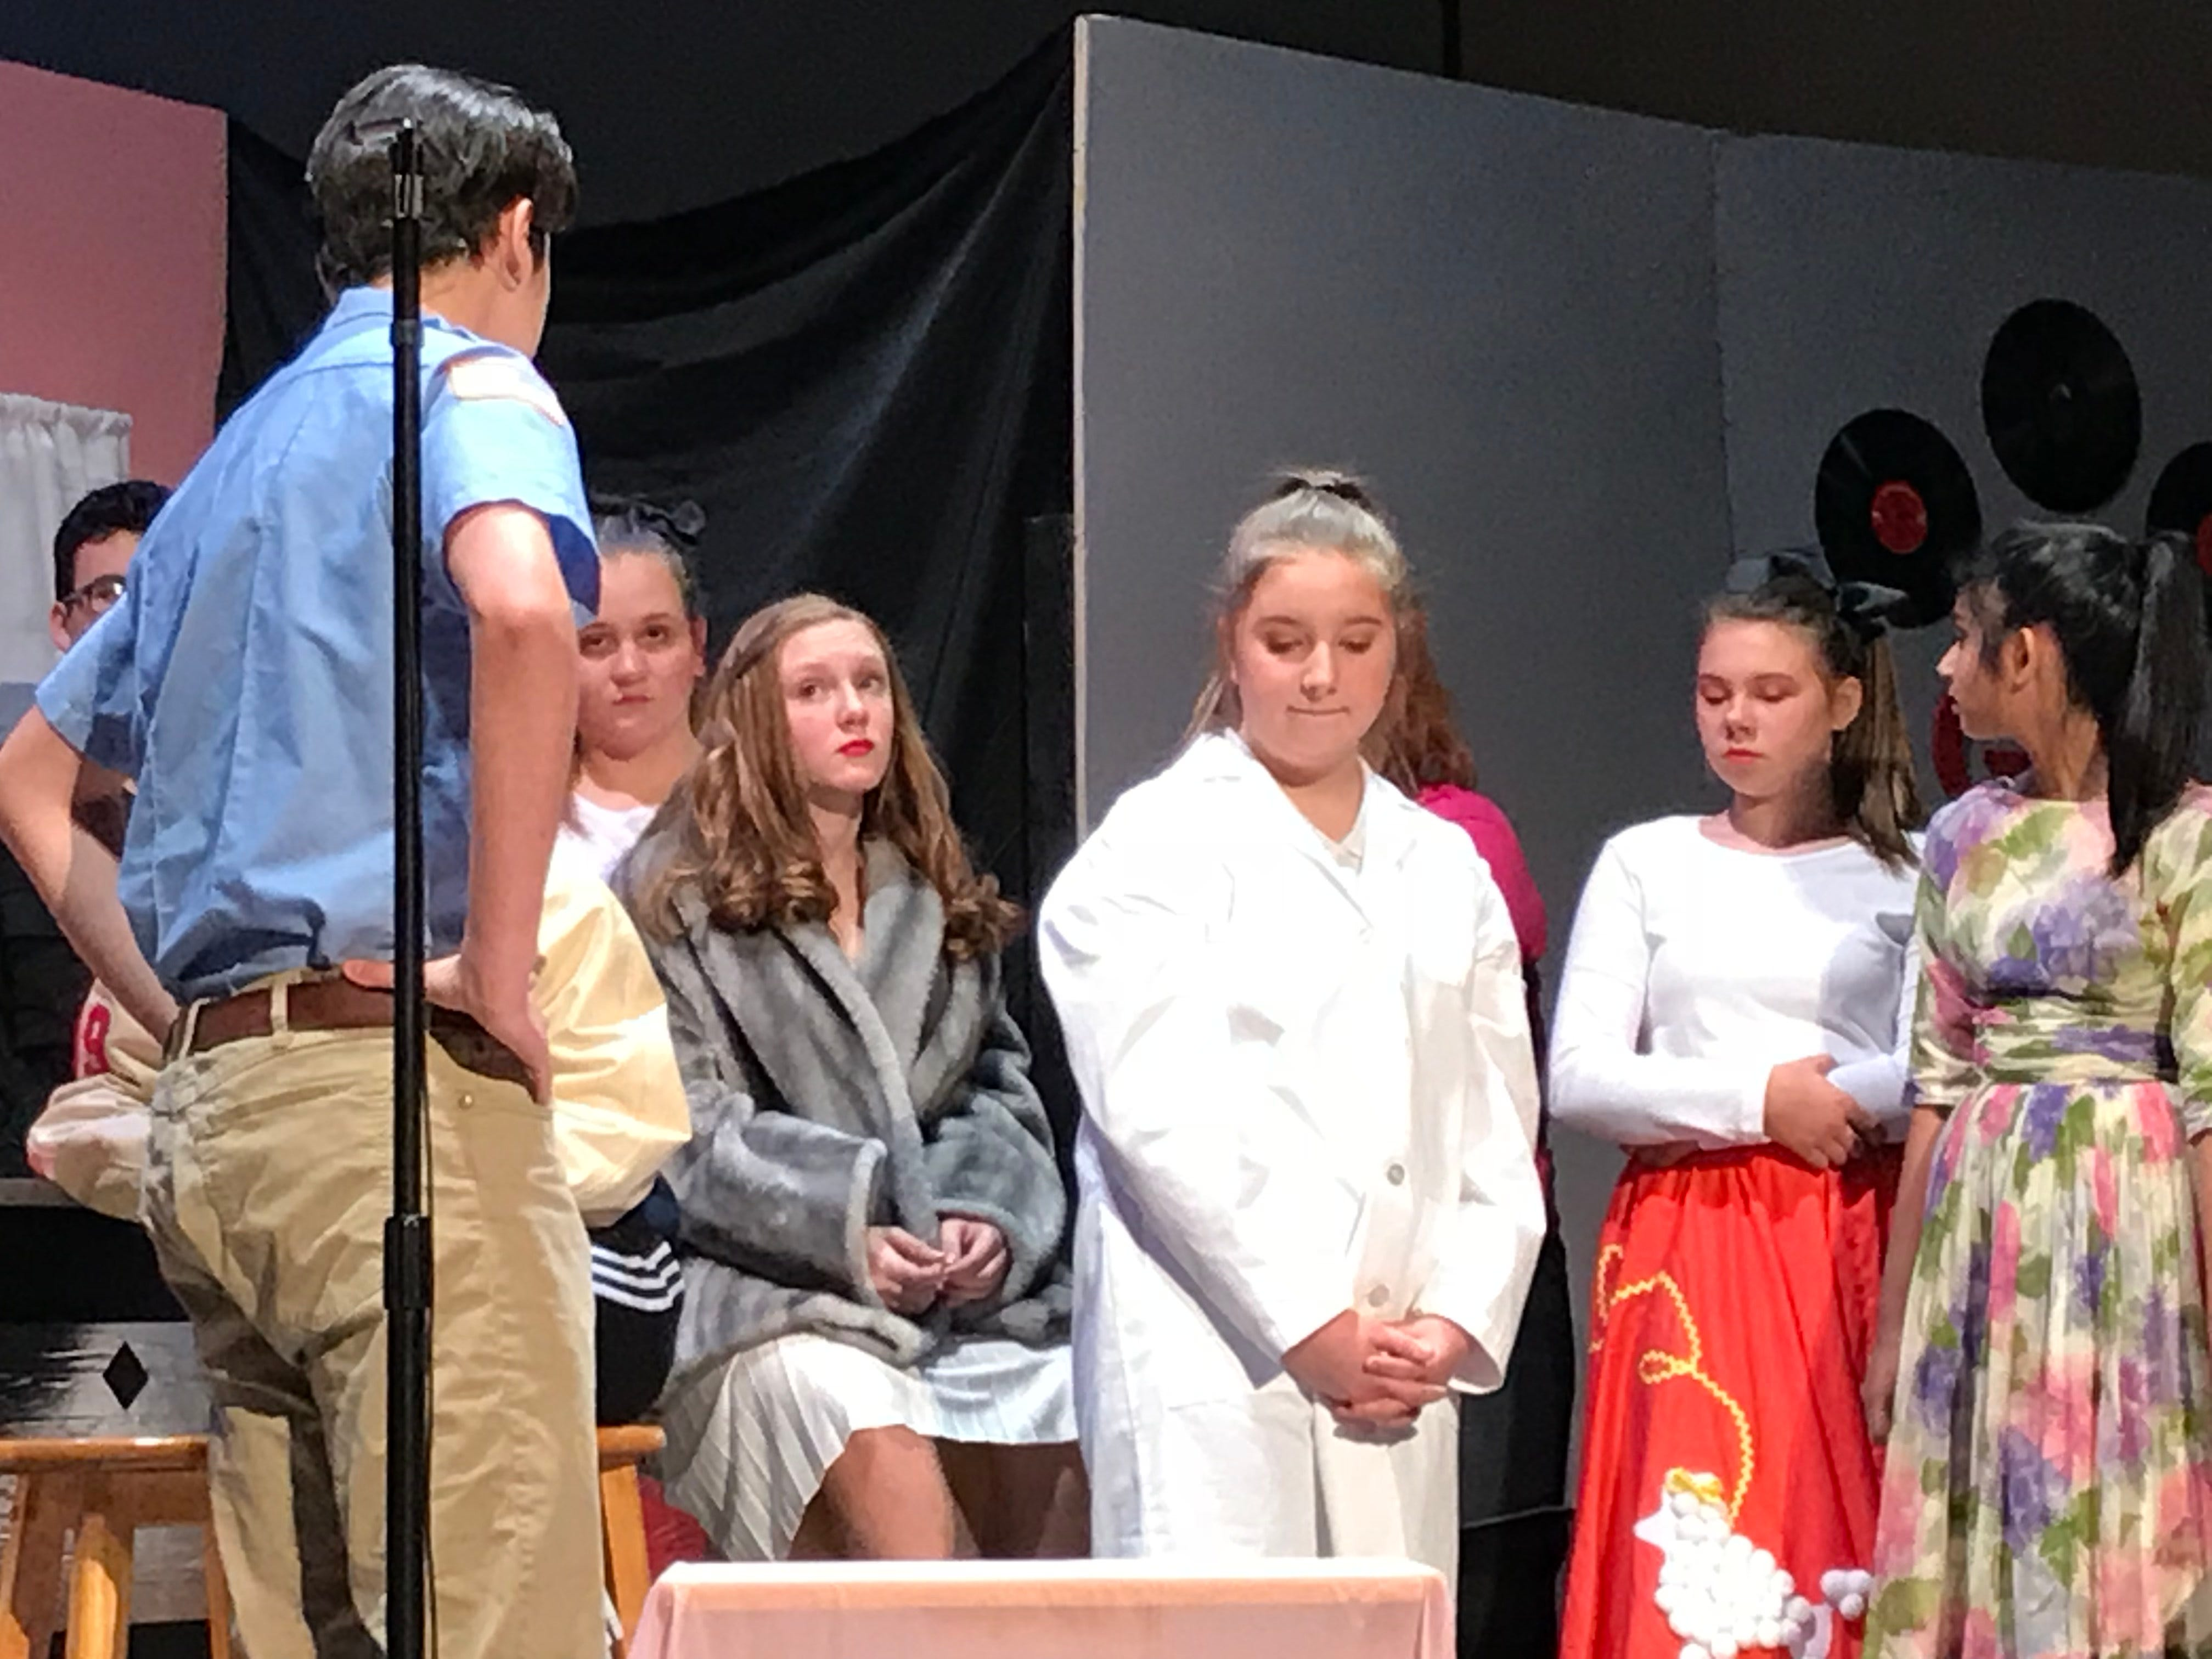 """Cumberland Valley Christian School students act out a scene in  """"Murder at the Malt Shop"""" during a dress rehearsal on Friday afternoon.  Pictured are, from left: Gianni Castellano, Hannah Kennedy, Emmalyn Hott, Jocelyn Merriman, Molly Buchanan and Dhriti Rathod. The public is invited to CVCS's performances of """"Murder at the Malt Shop"""" at 7 p.m. on Nov. 16 and 17 at Open Door Church, on the campus of CVCS at 600 Miller St., Chambersburg."""